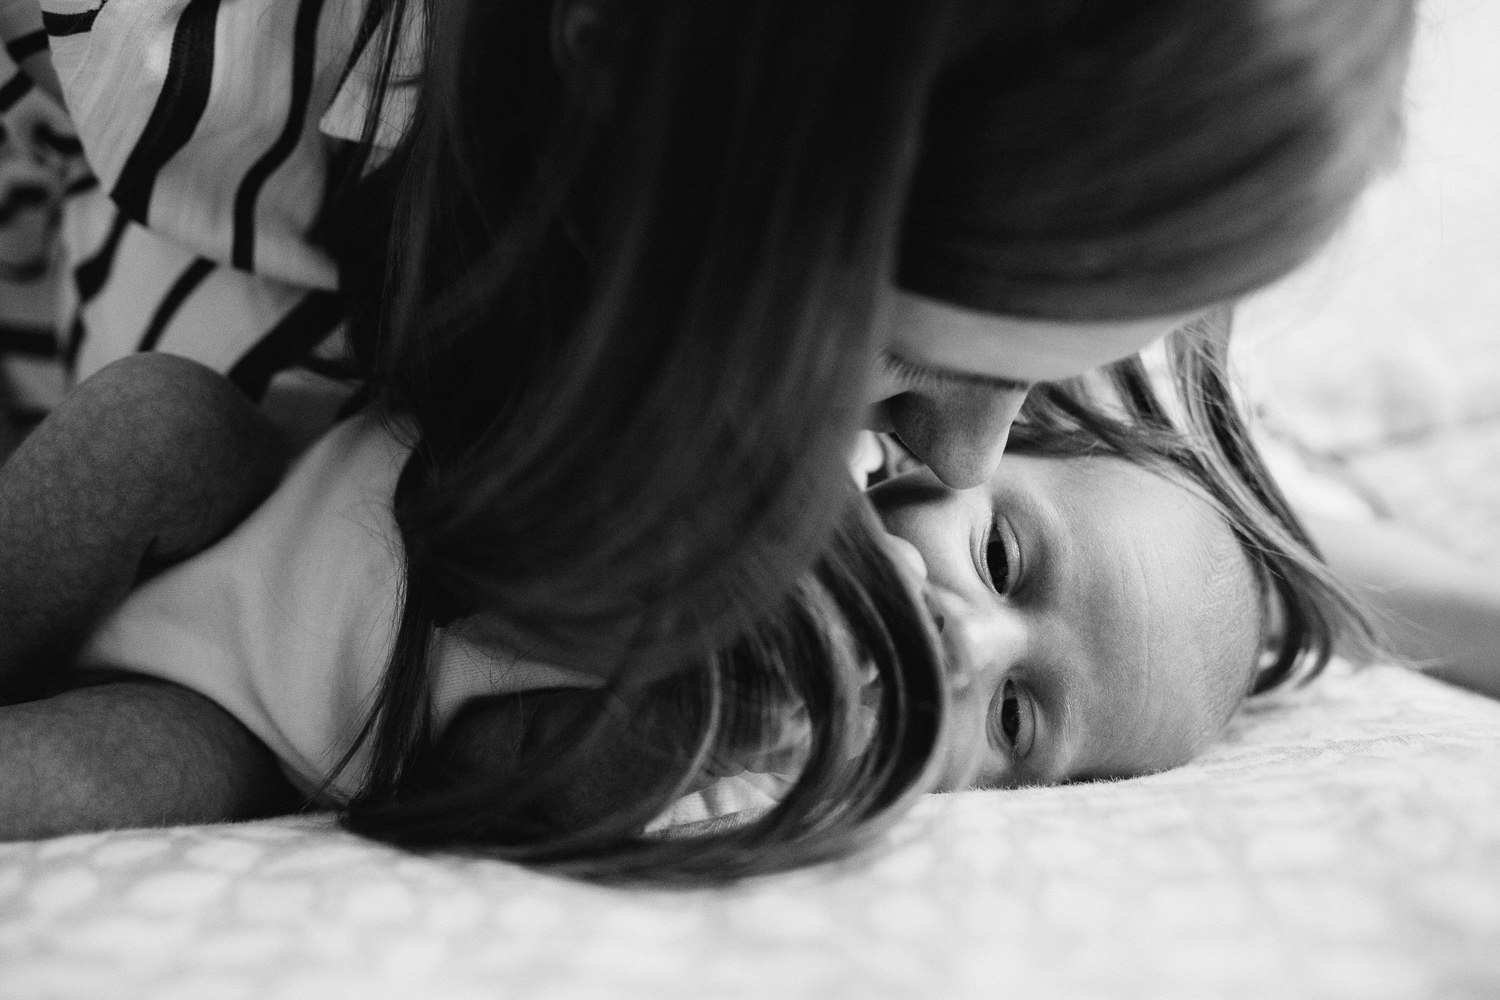 first time mother kisses 2 week old baby son's forehead as he lies on bed - Markham Lifestyle Photography